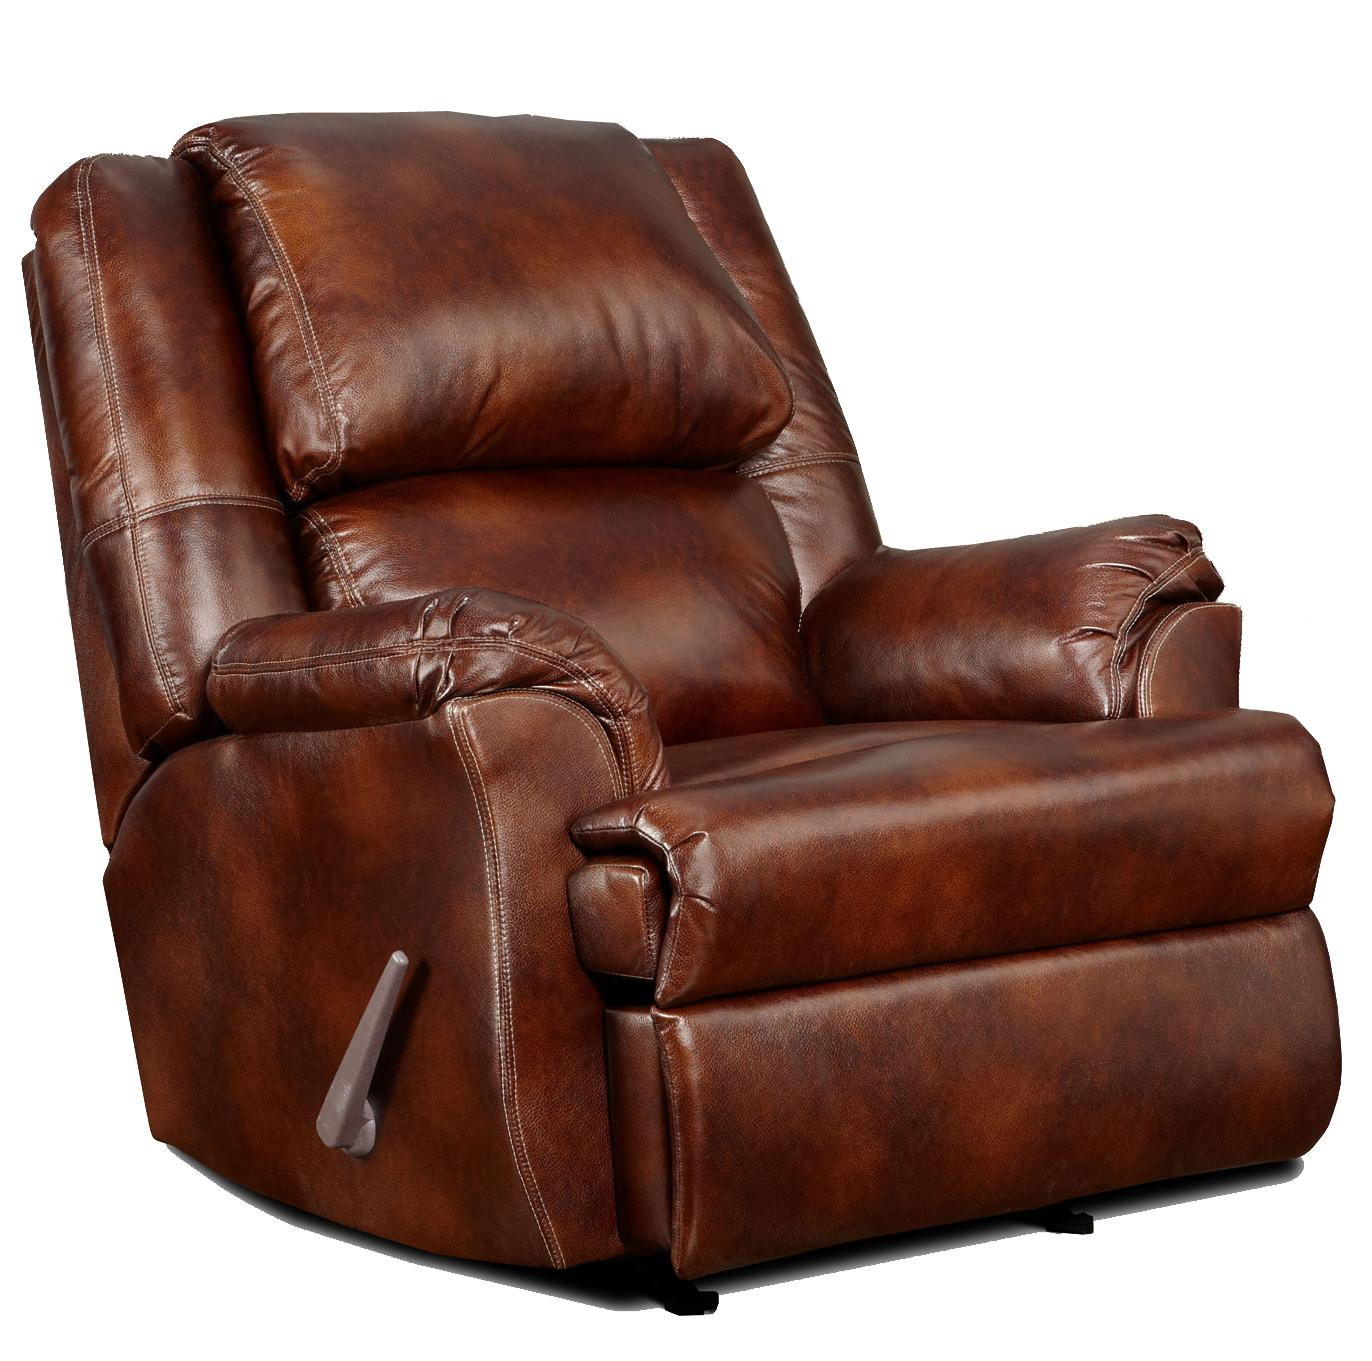 2600 Mesa Recliner by Affordable Furniture at Wilcox Furniture